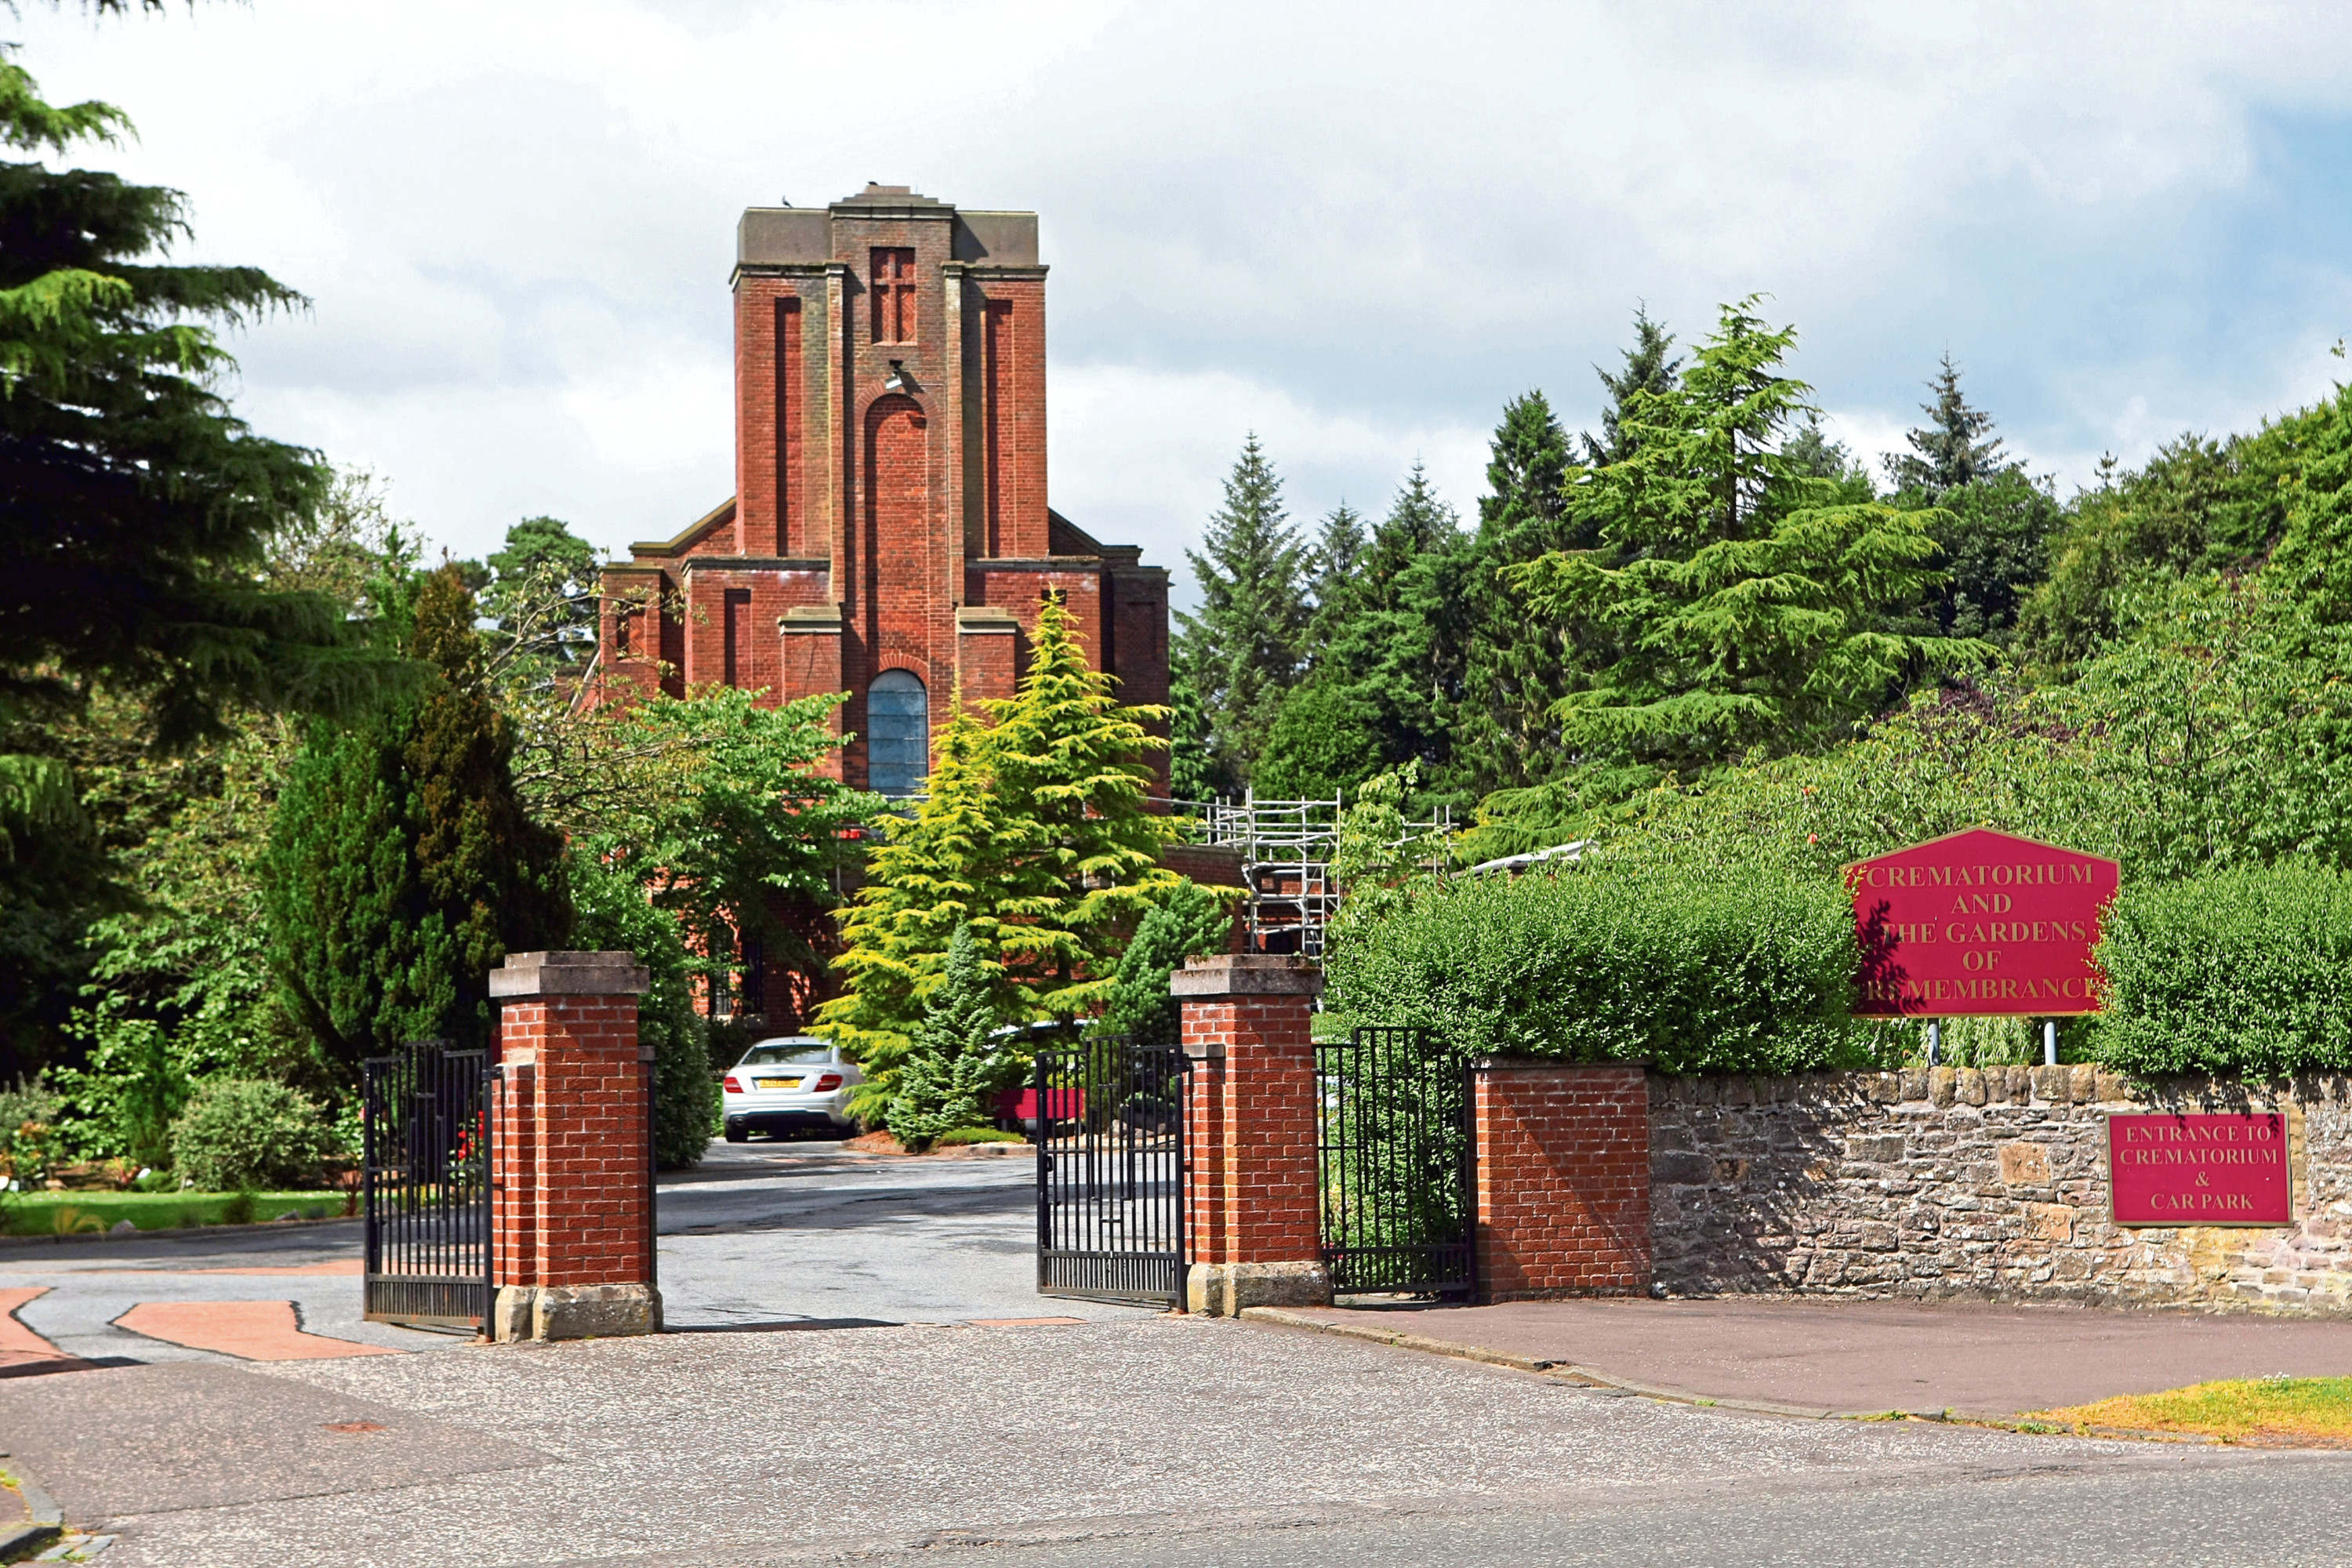 The service will be held at Dundee Crematorium, but will be private due to coronavirus restrictions.